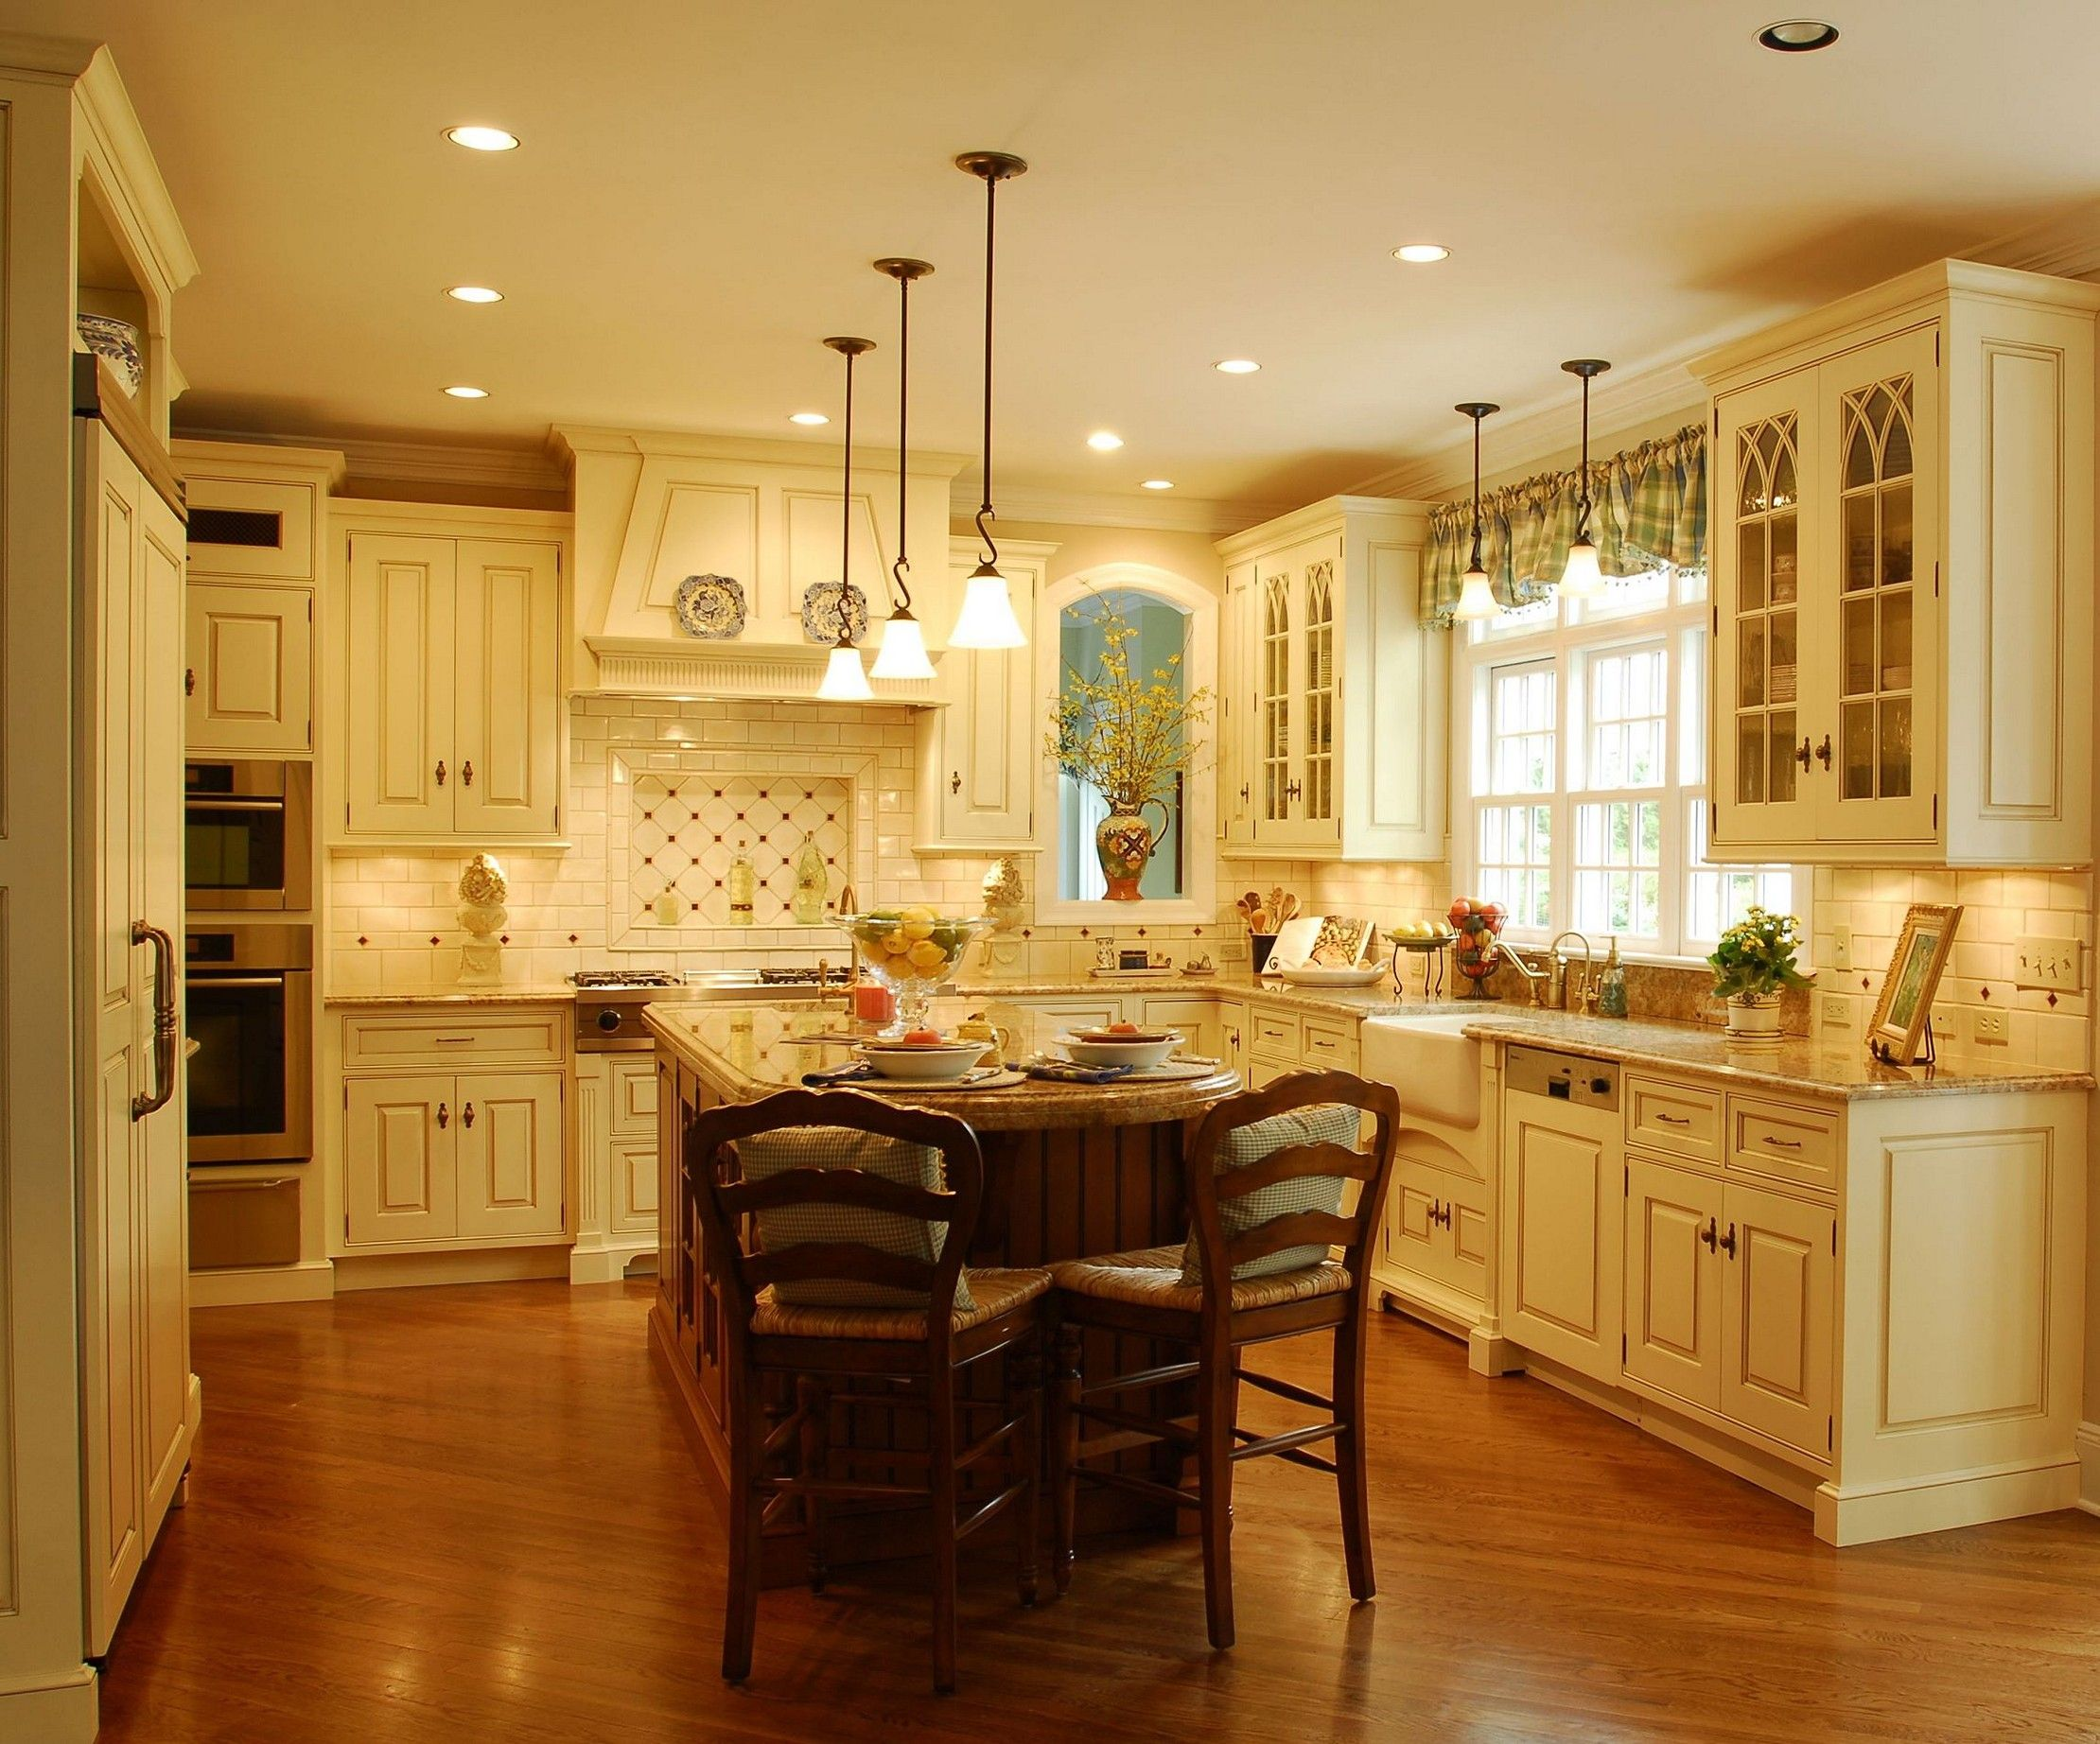 Image result for cream colored kitchen cabinets with dark island ...